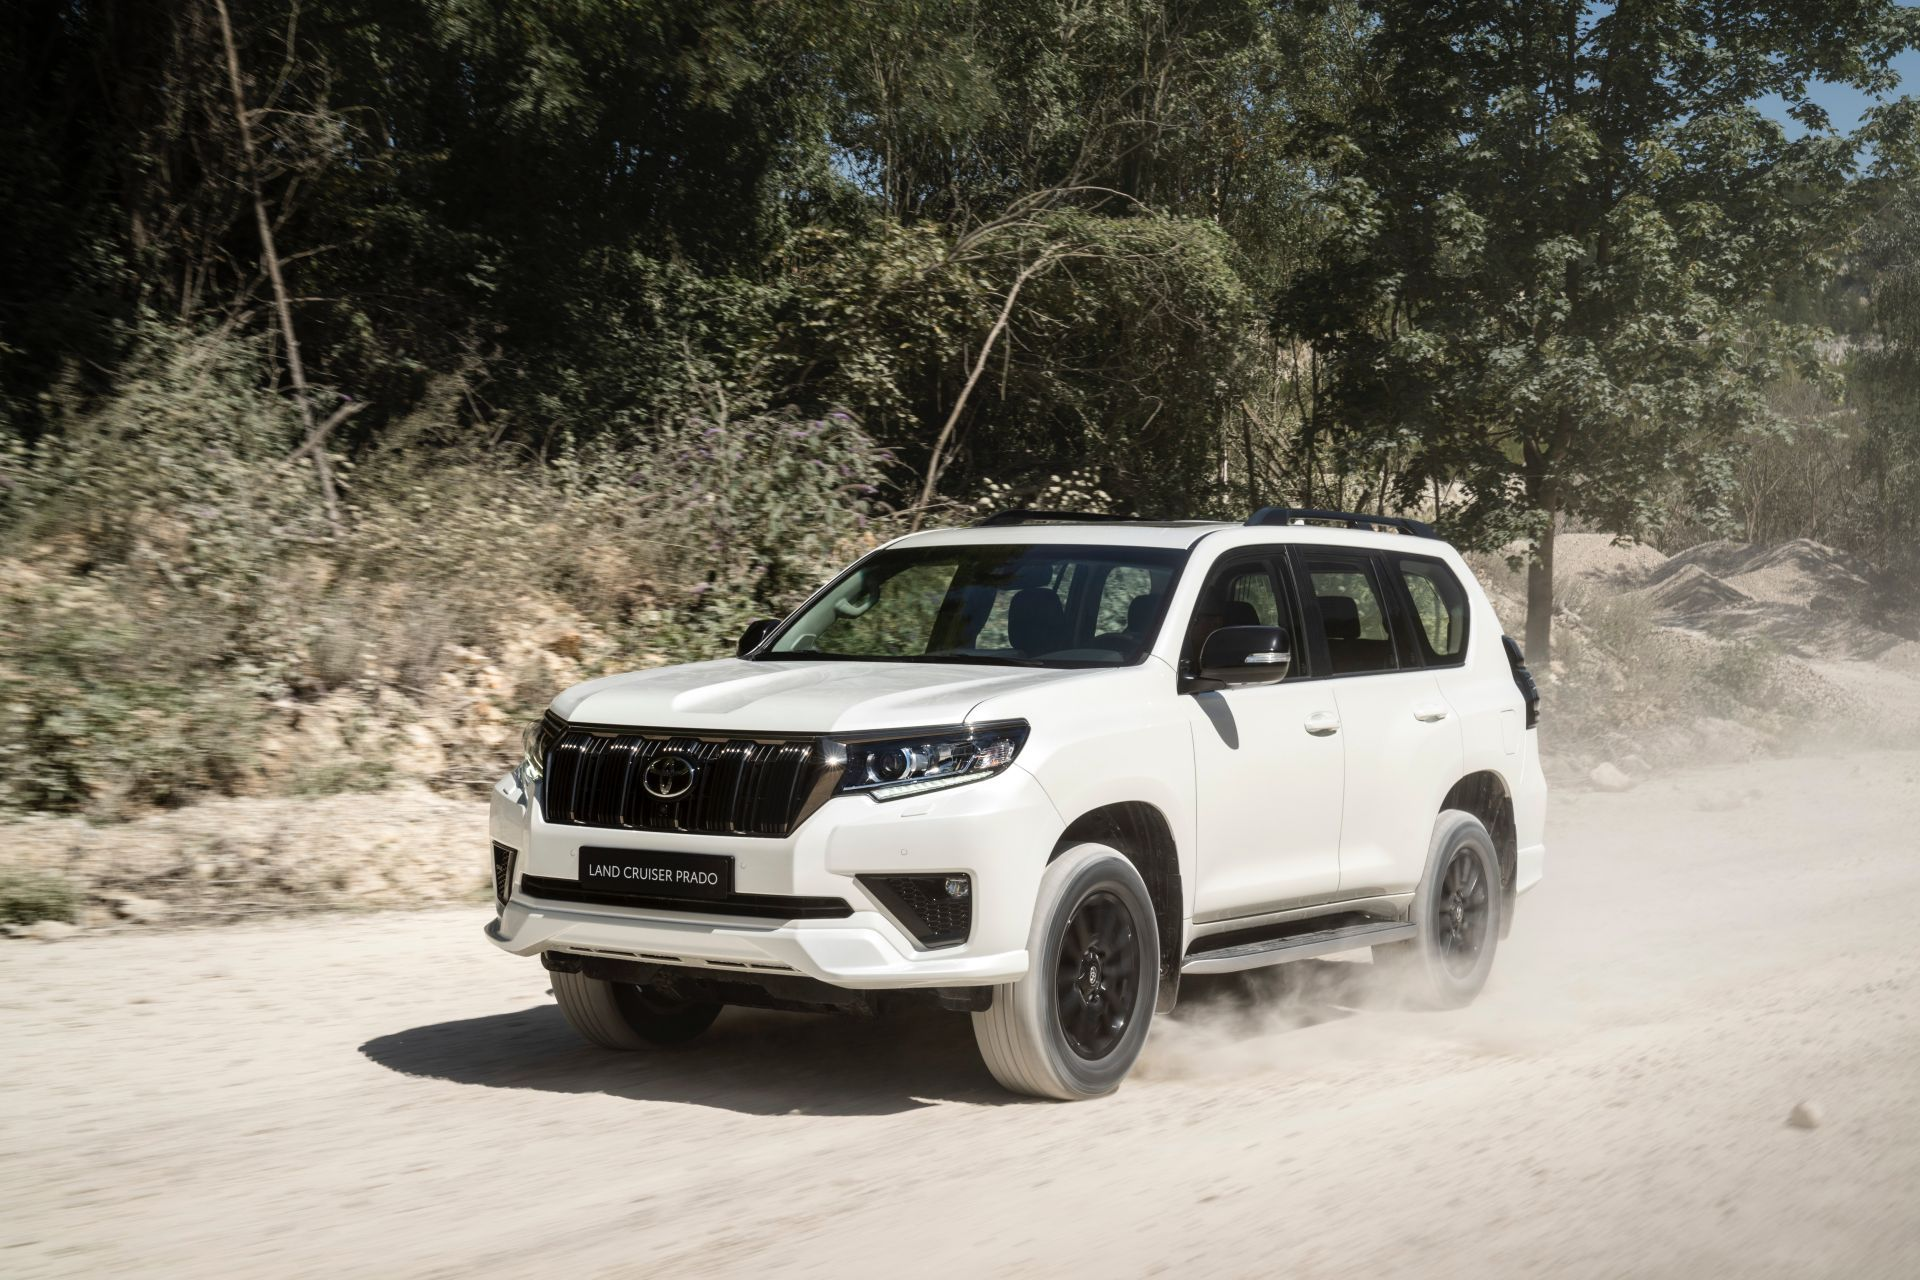 Toyota-Land-Cruiser-euro-2021-7